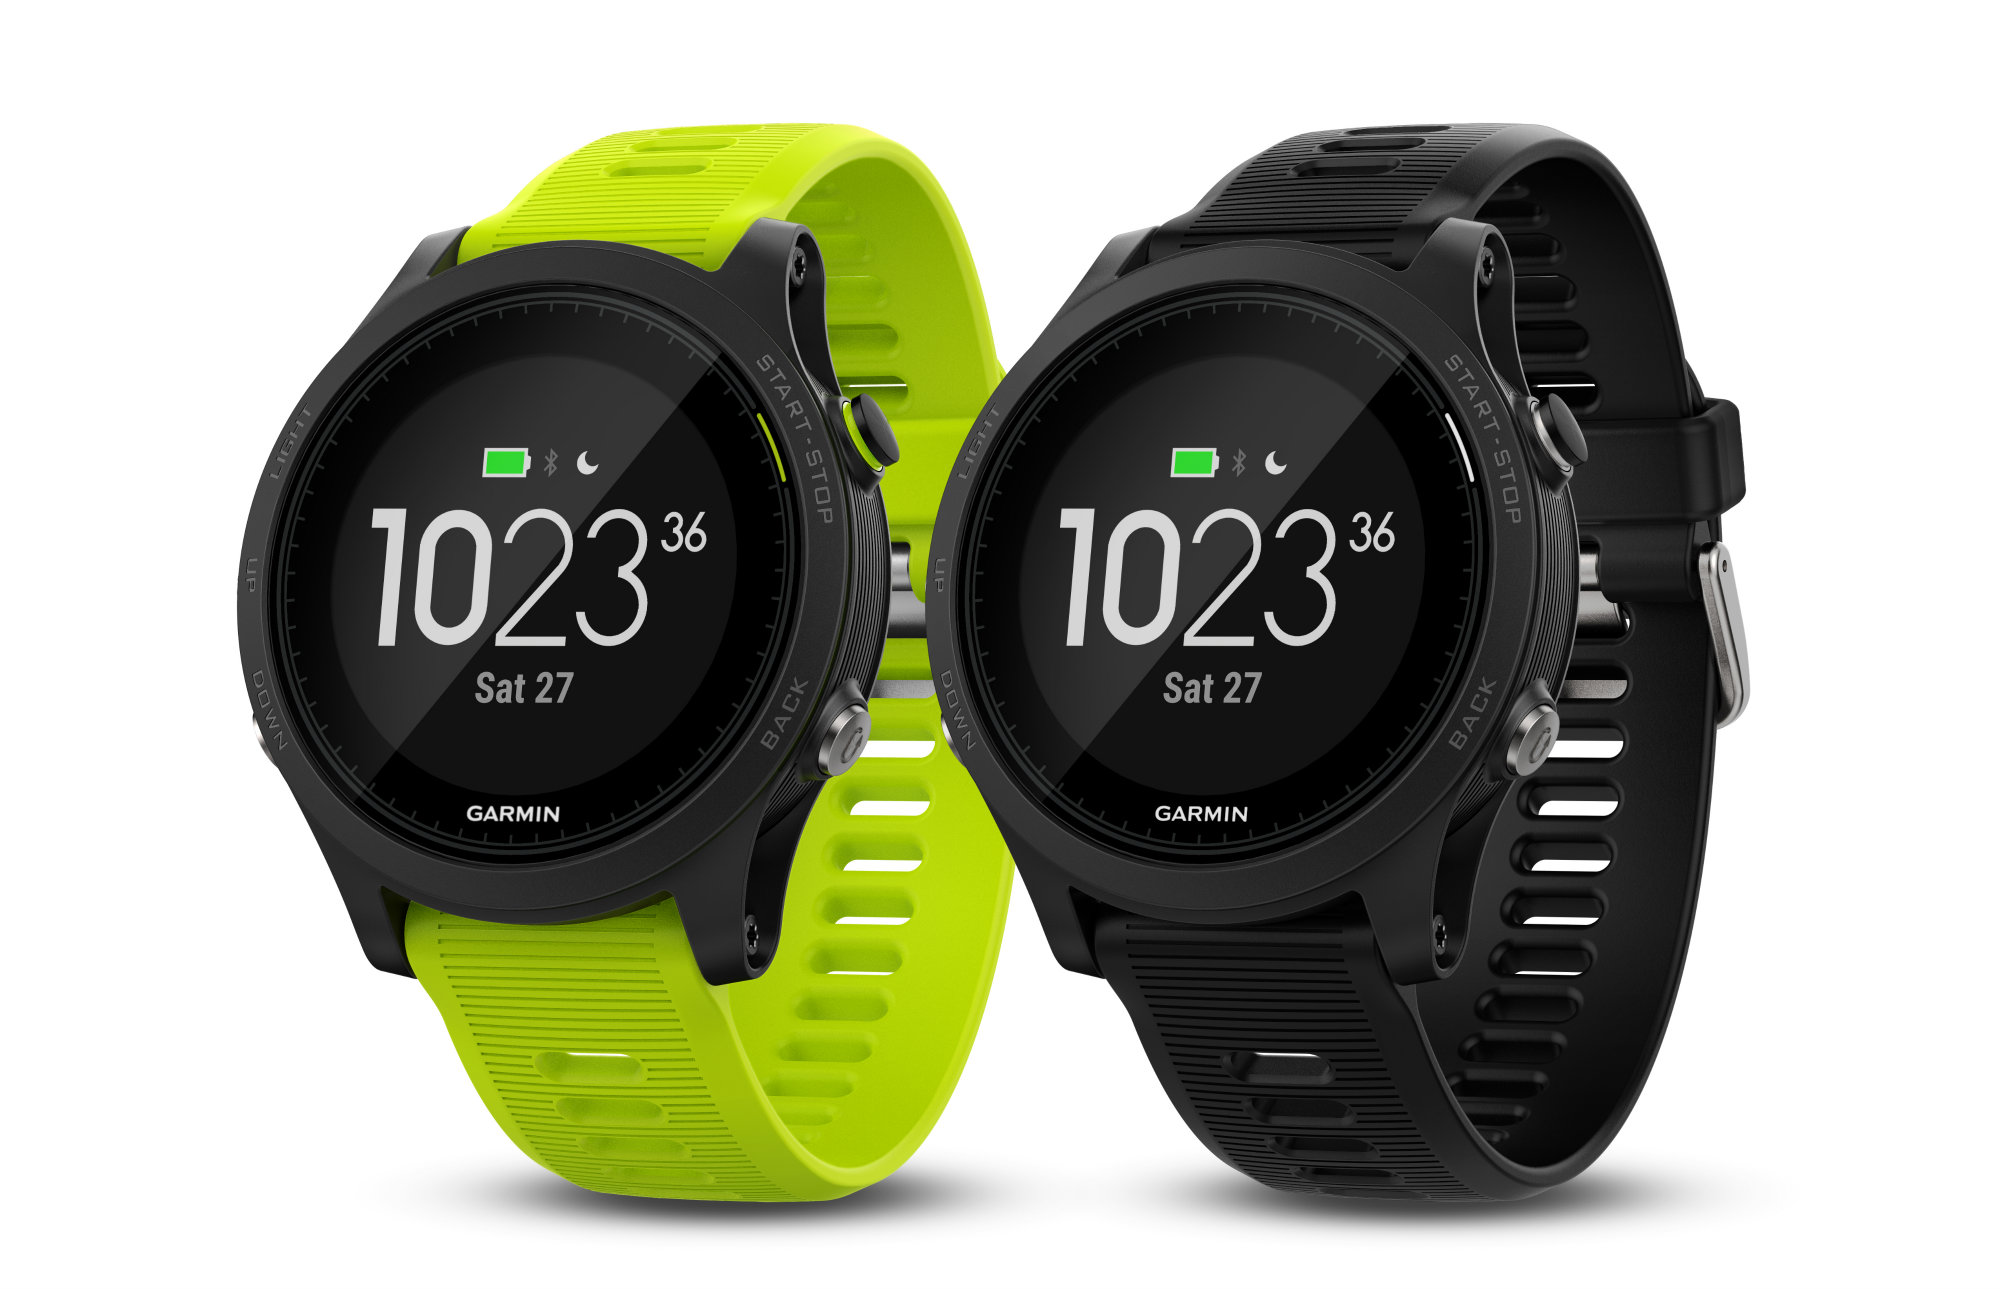 Garmin's Forerunner 935 smartwatch knows how hard you work out